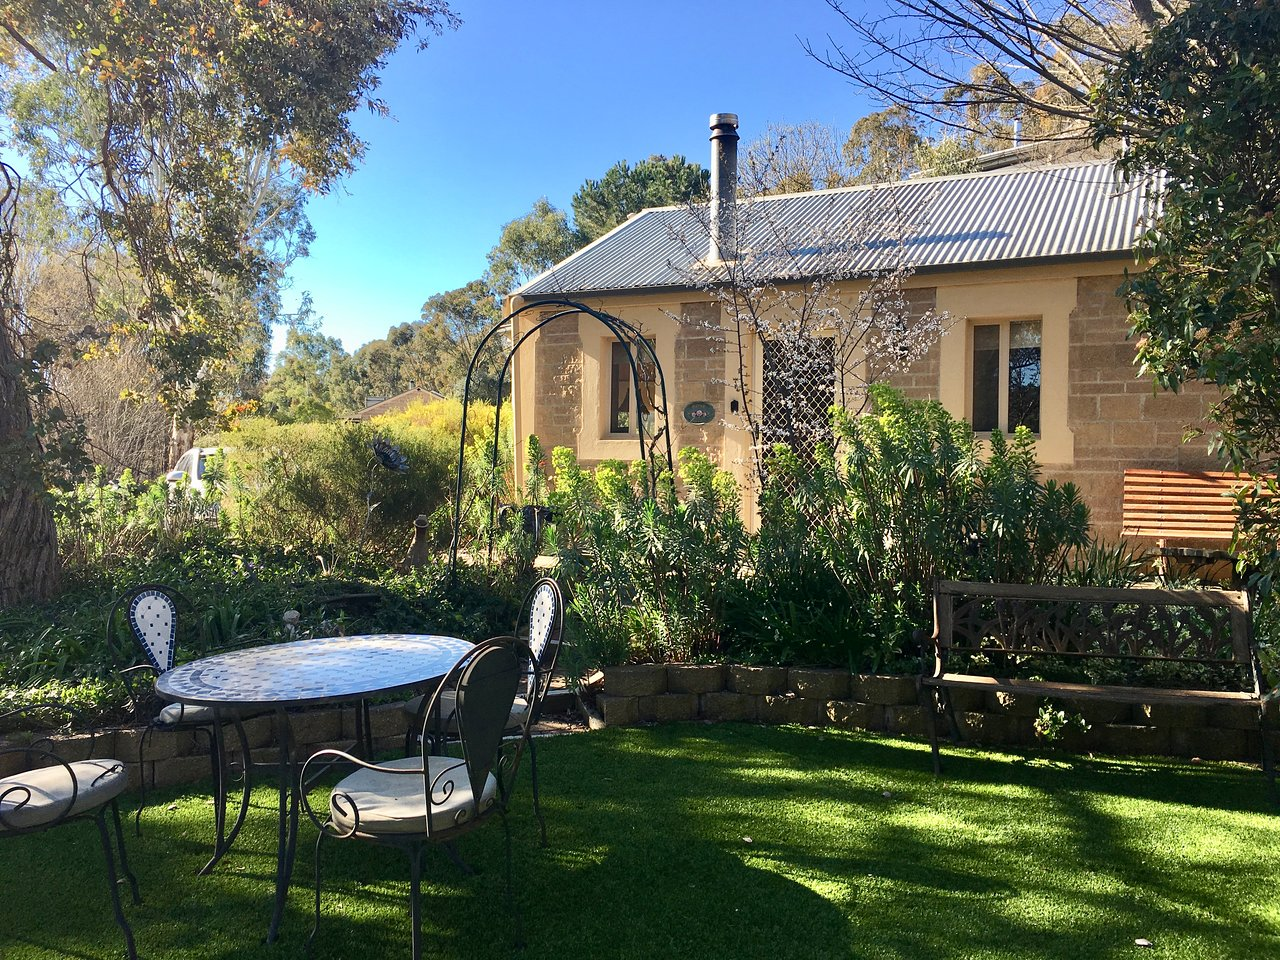 riesling trail and clare valley cottages au 161 2019 prices rh tripadvisor com au